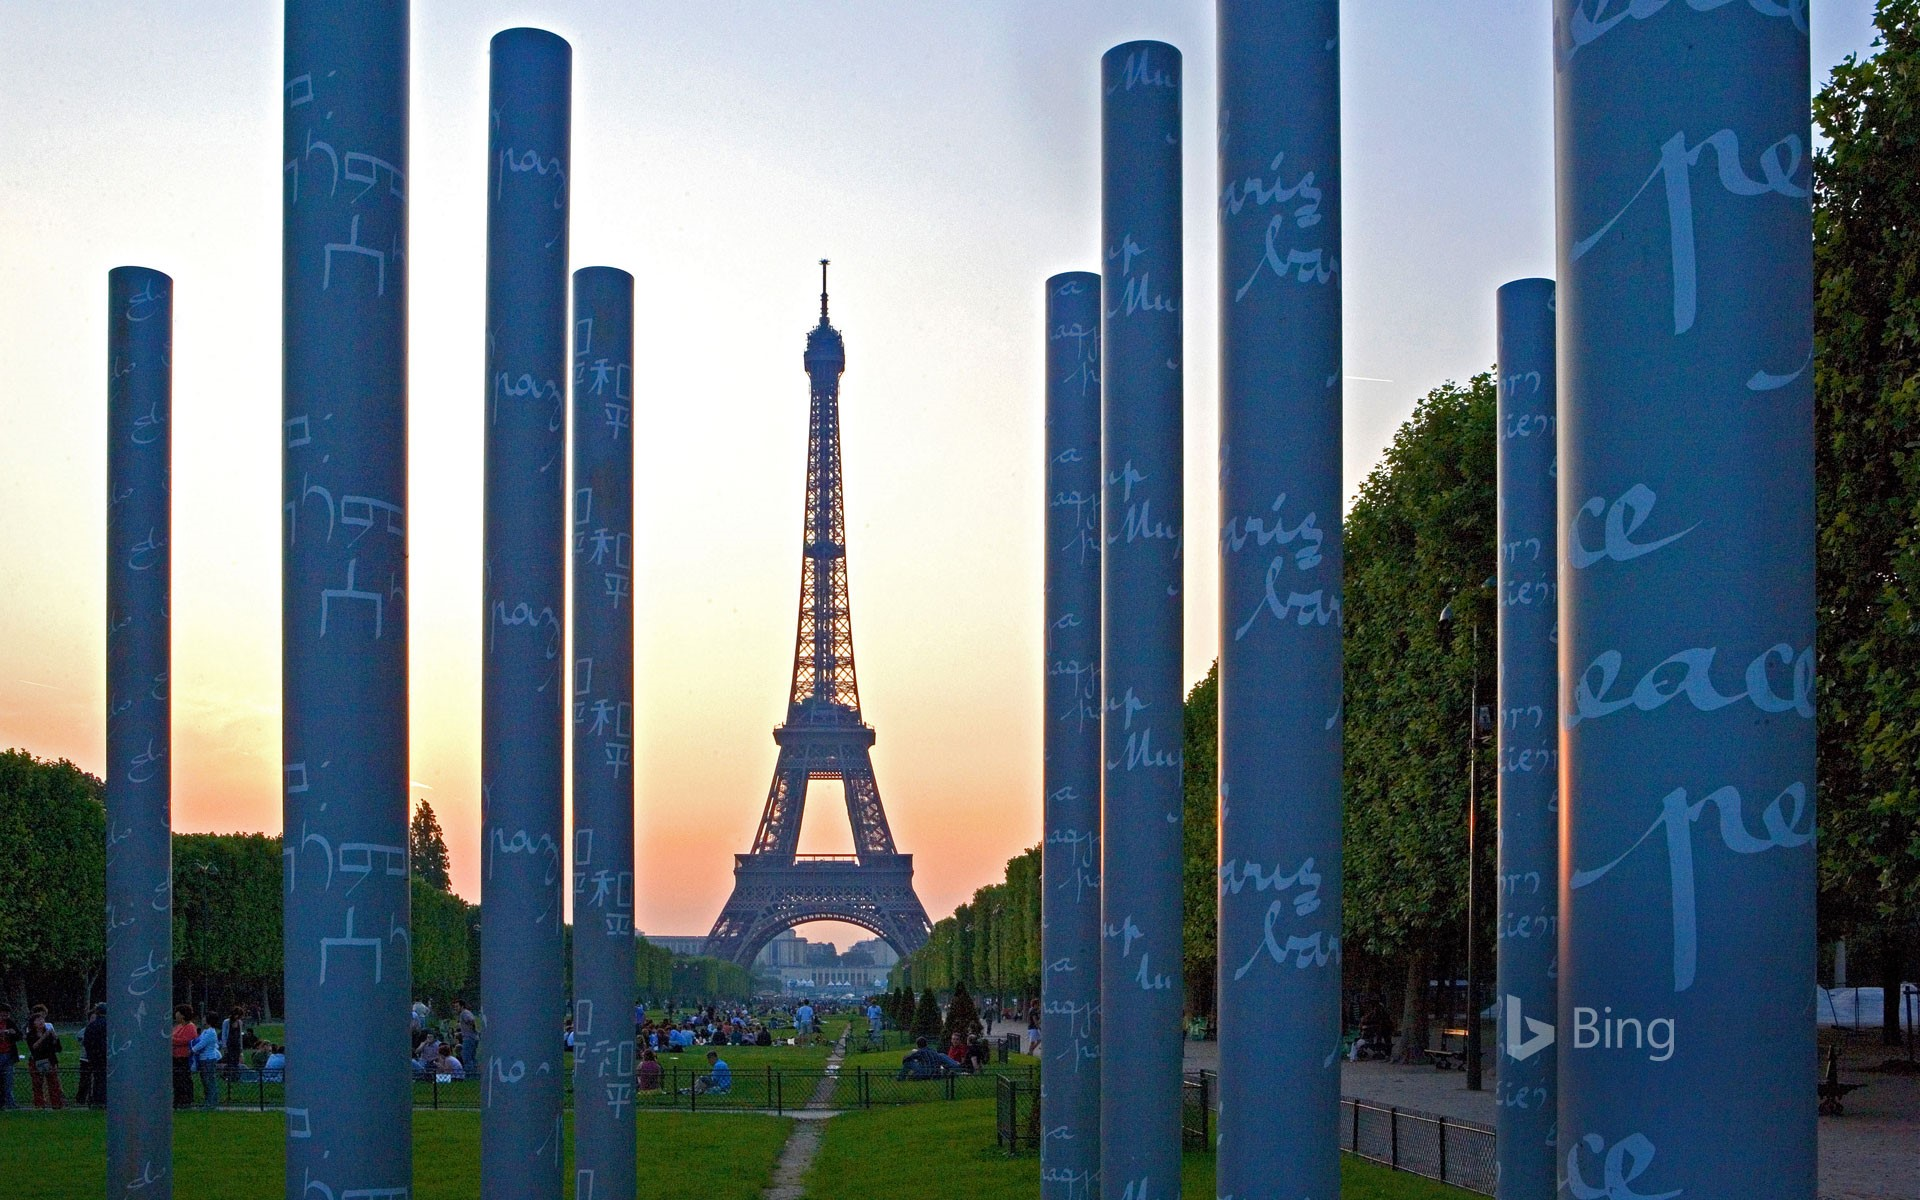 'The Wall for Peace' and the Eiffel Tower in Paris for the International Day of Peace